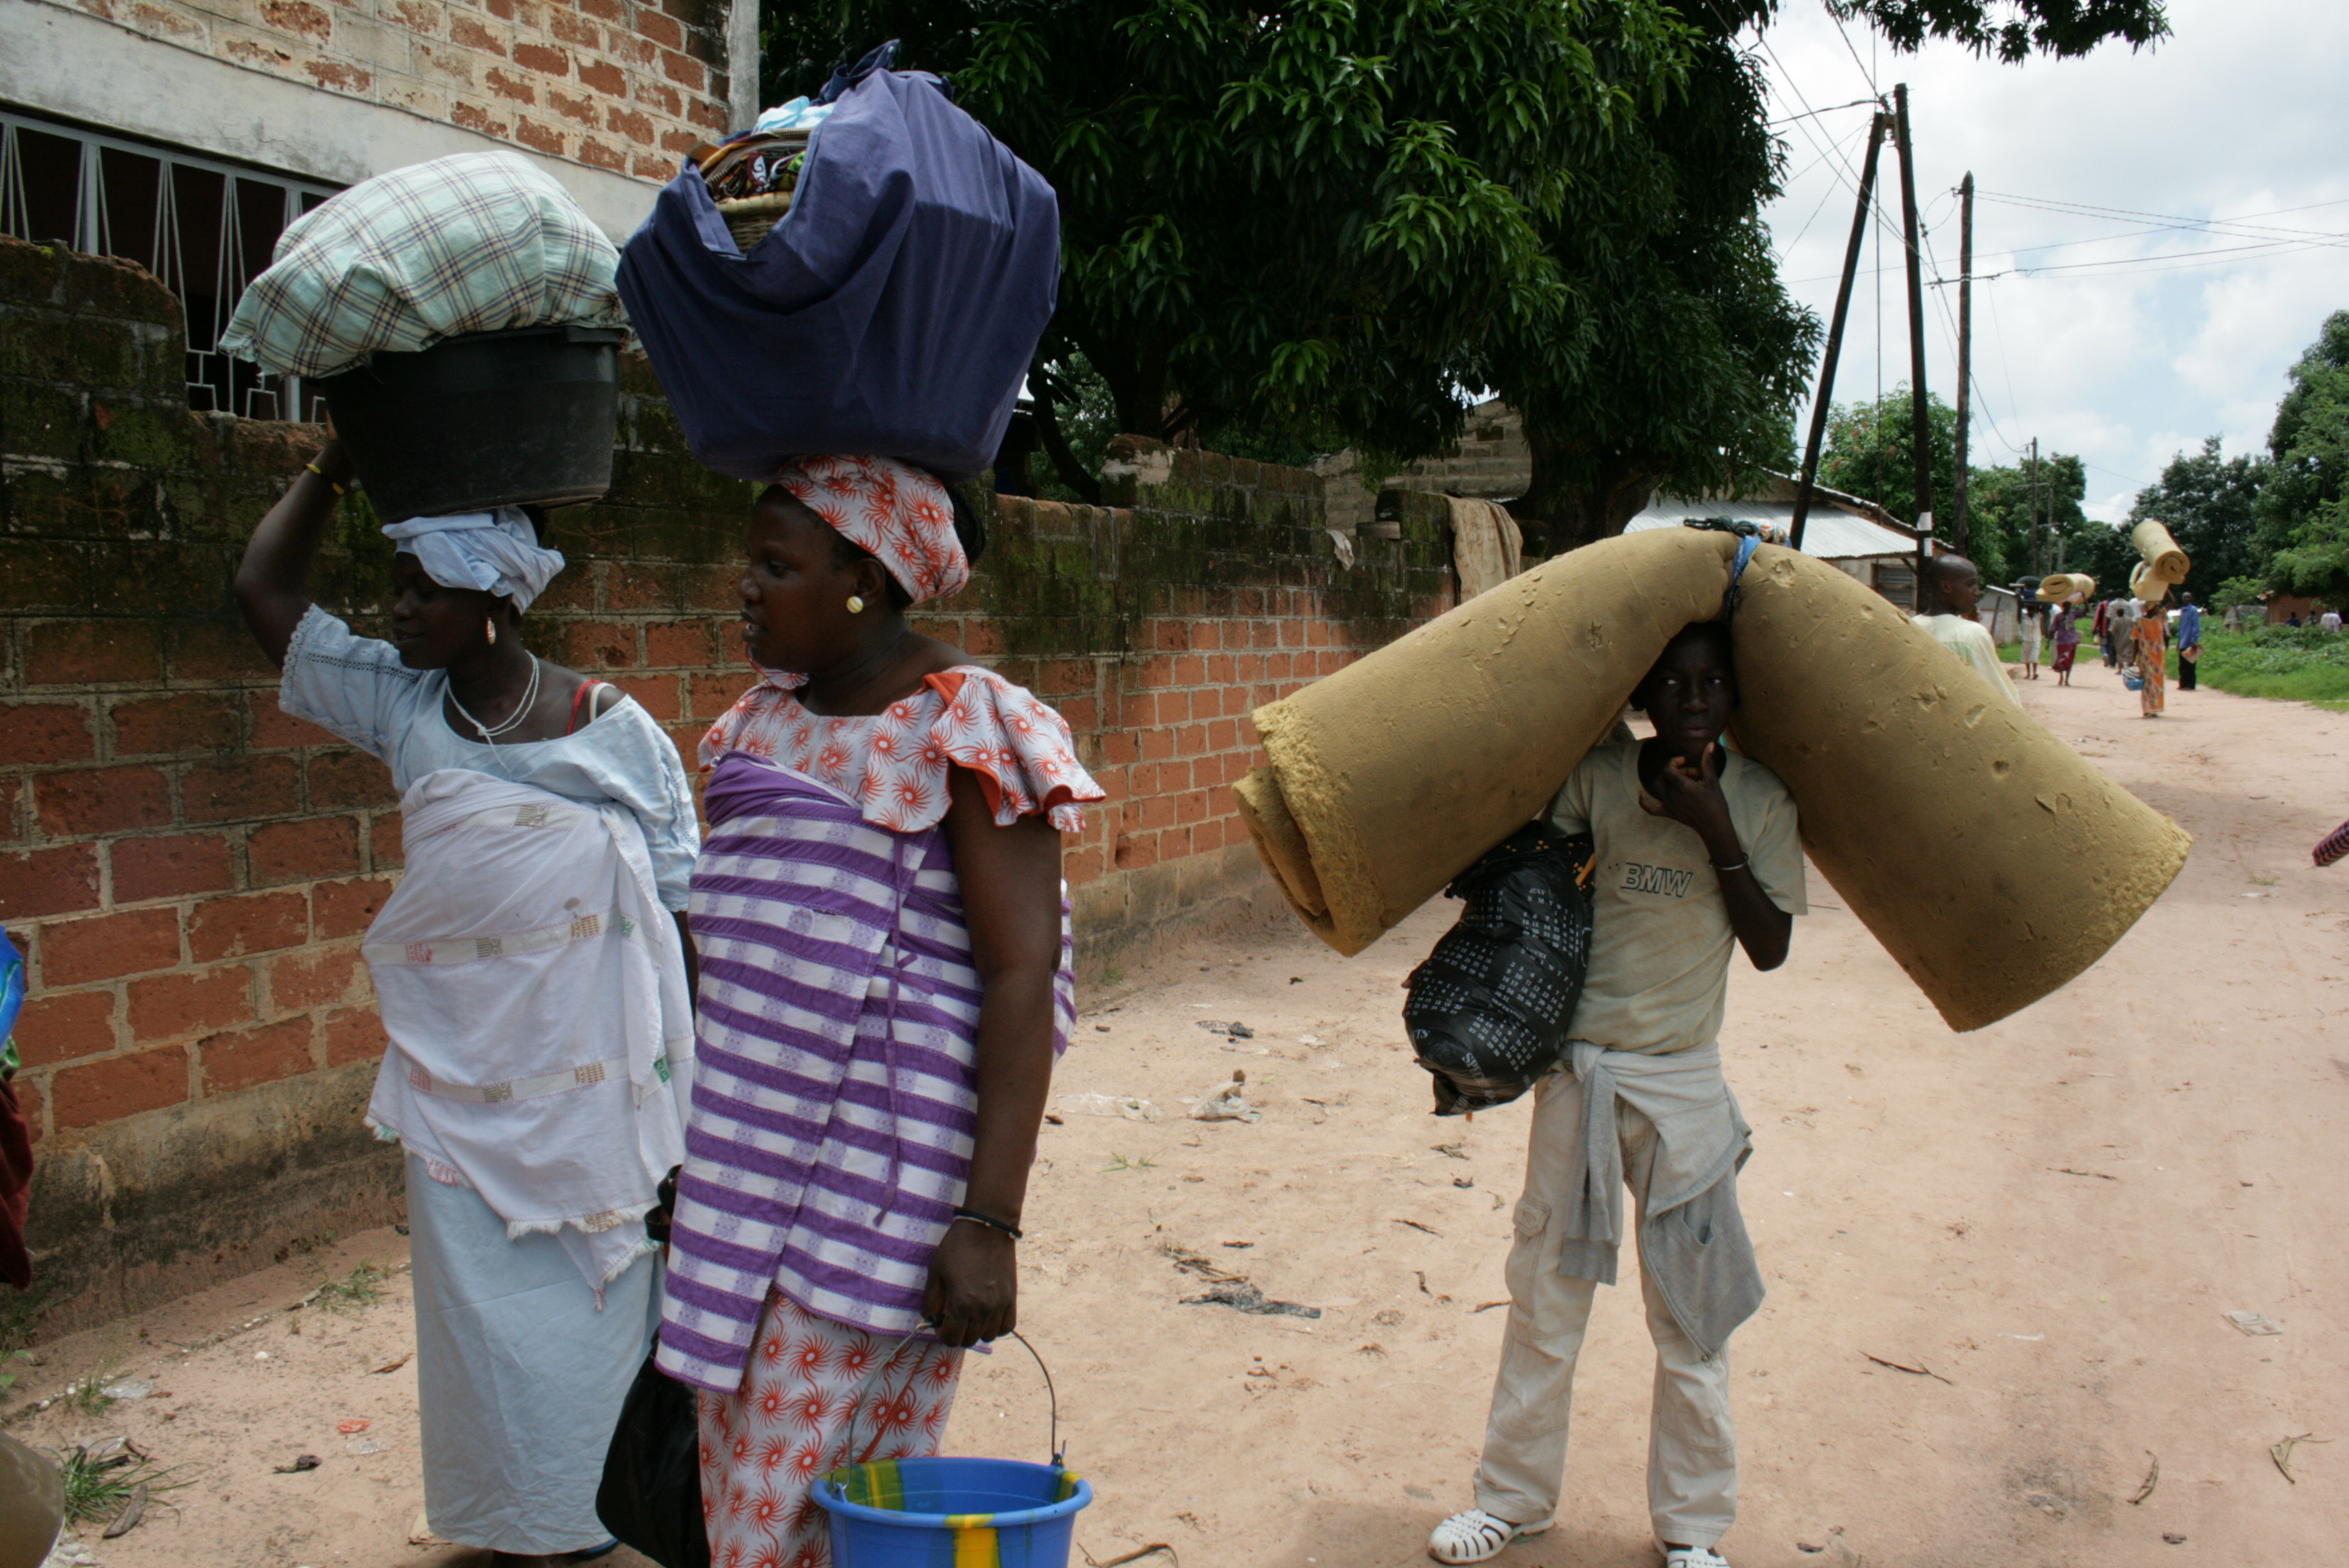 Families fleeing their neighbourhood of Diabir on the outskirts of Ziguinchor, the main city in Senegal's Casamance region, following clashes between the army and separatist rebels. September 2009